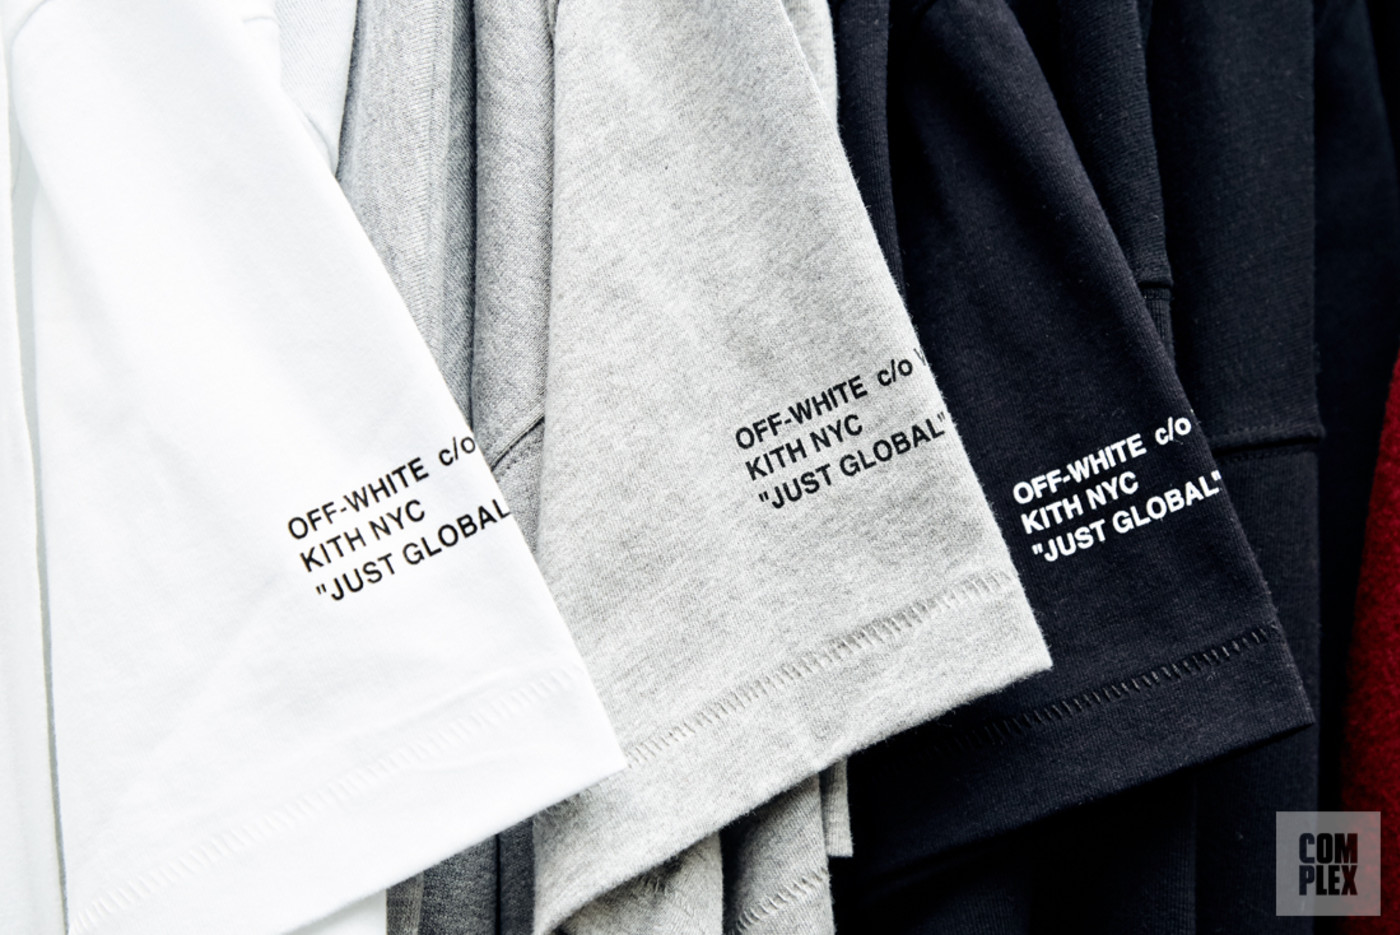 Kith's upcoming Off-White collaboration.